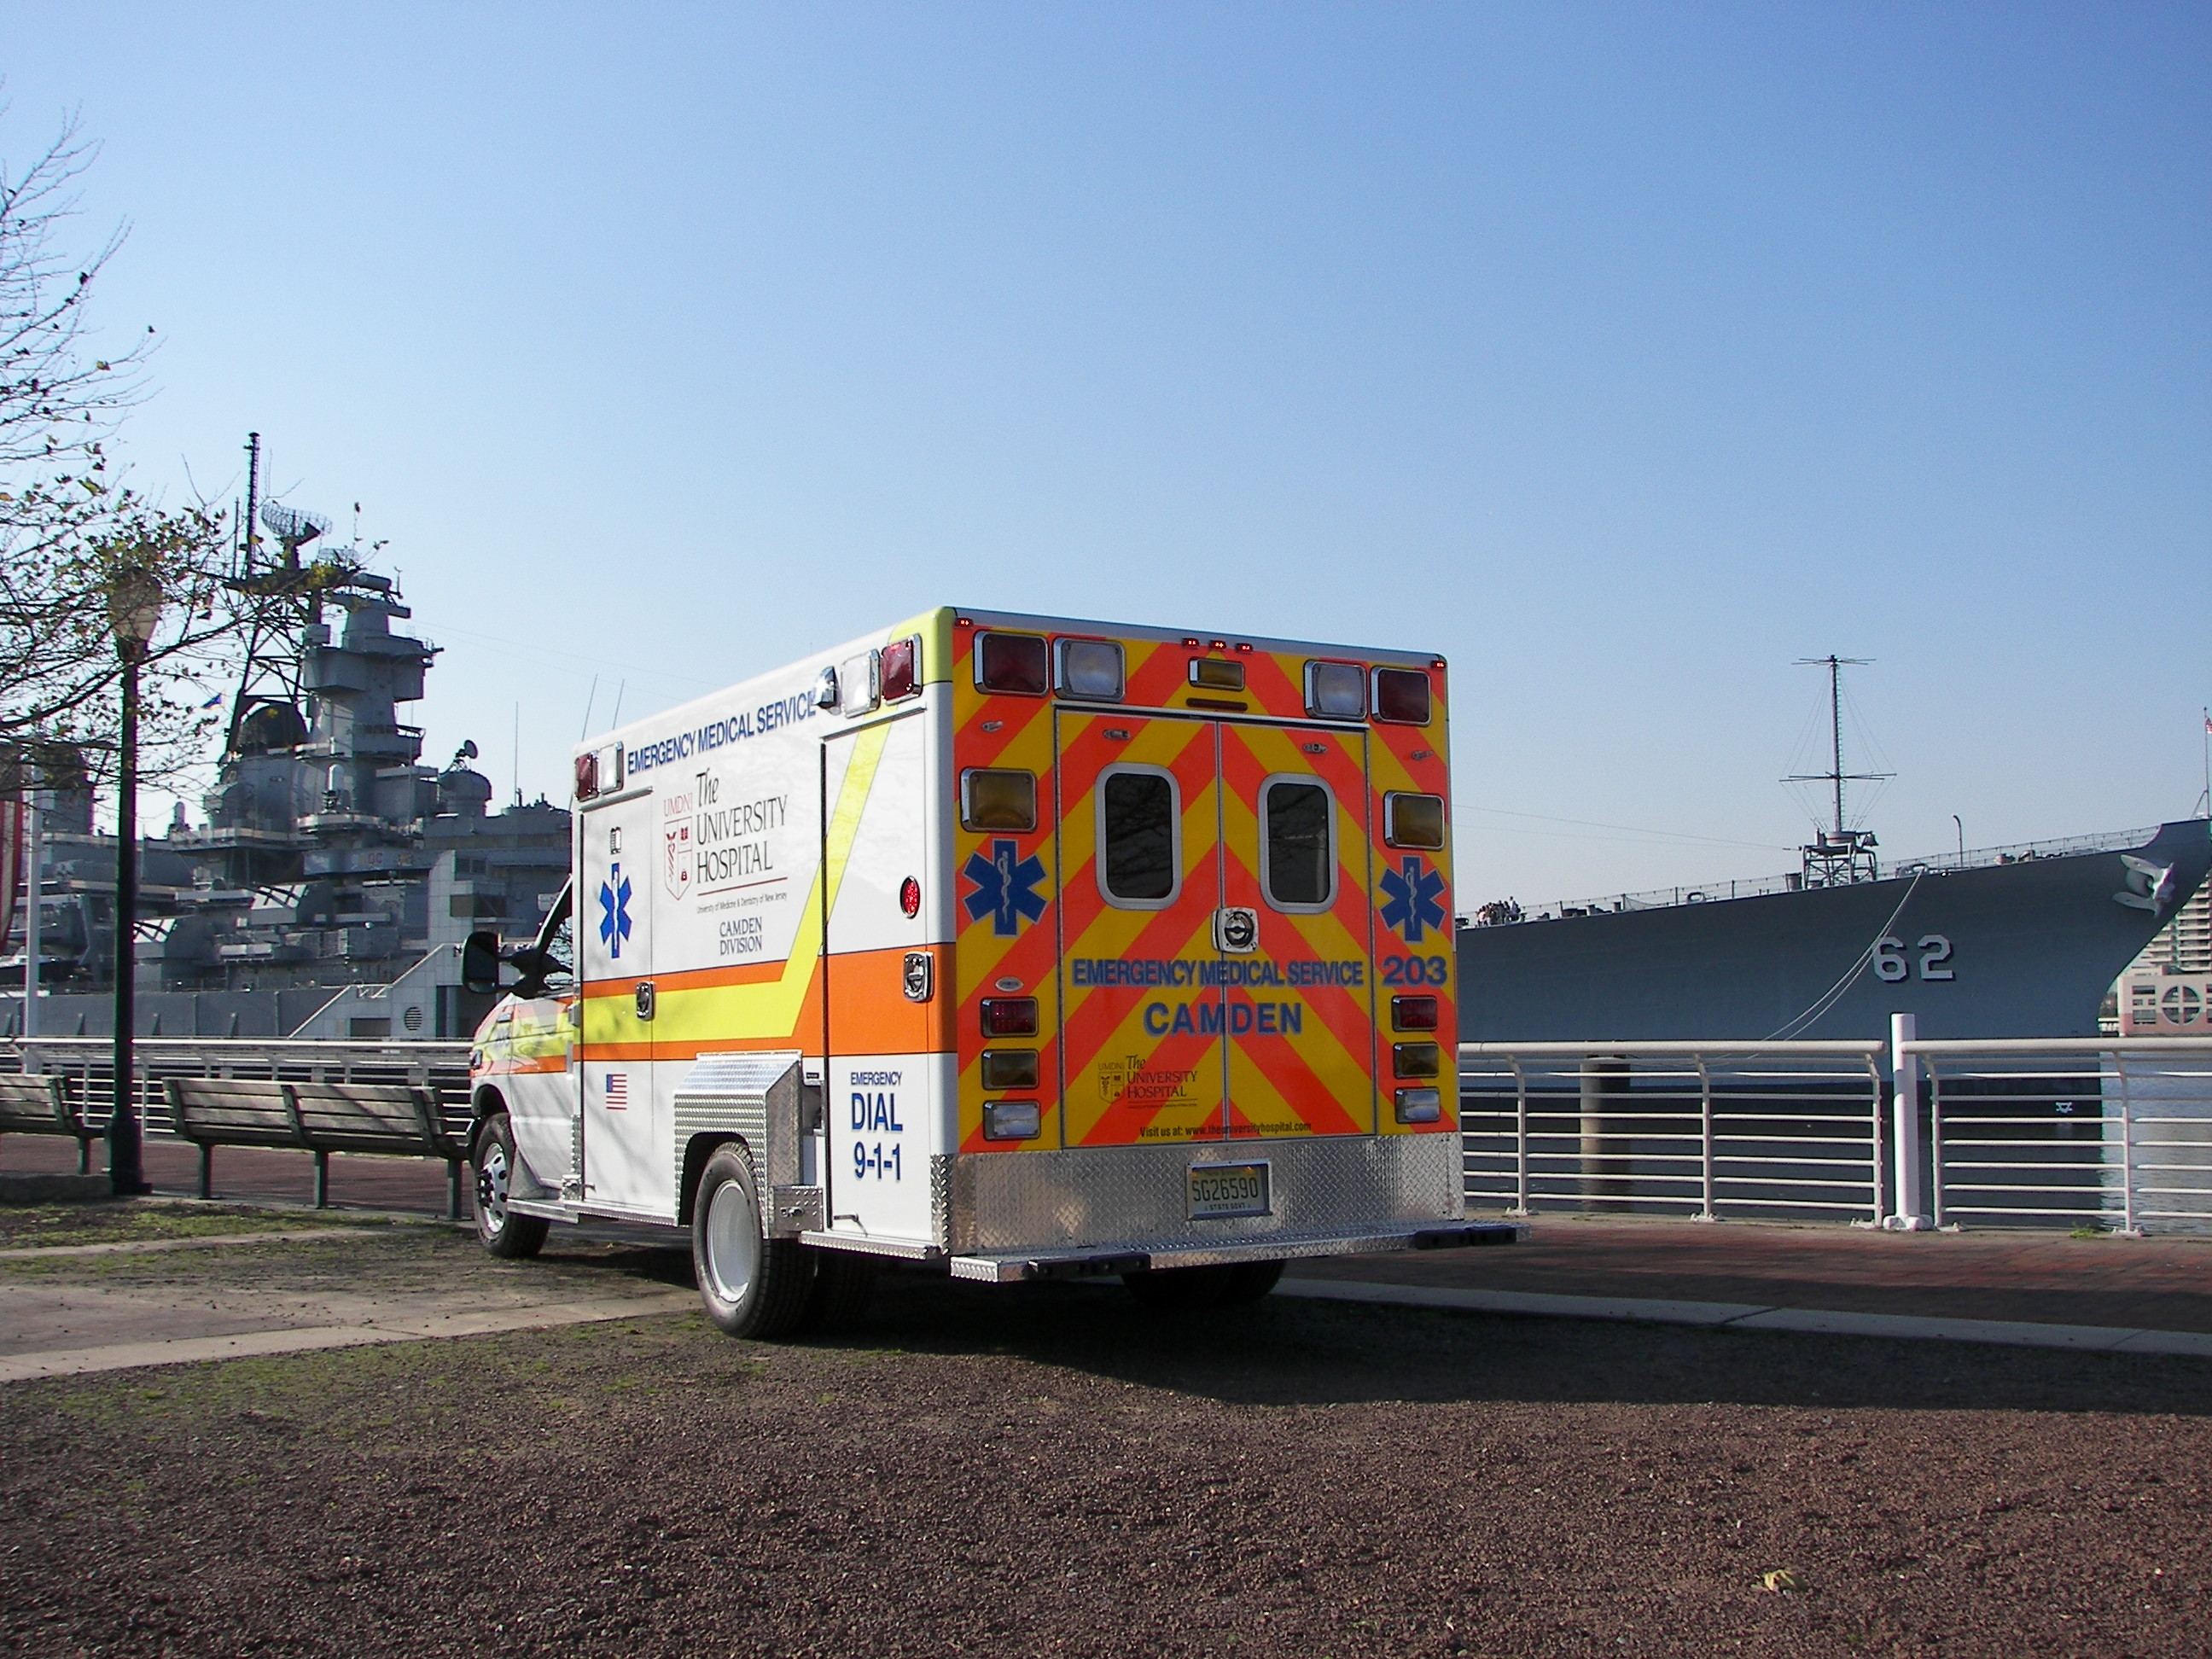 In 2006 UMDNJ EMS Camden celebrated its 20th year of service to the City of Camden. UMDNJ EMS answers a little over 25,000 calls a year!